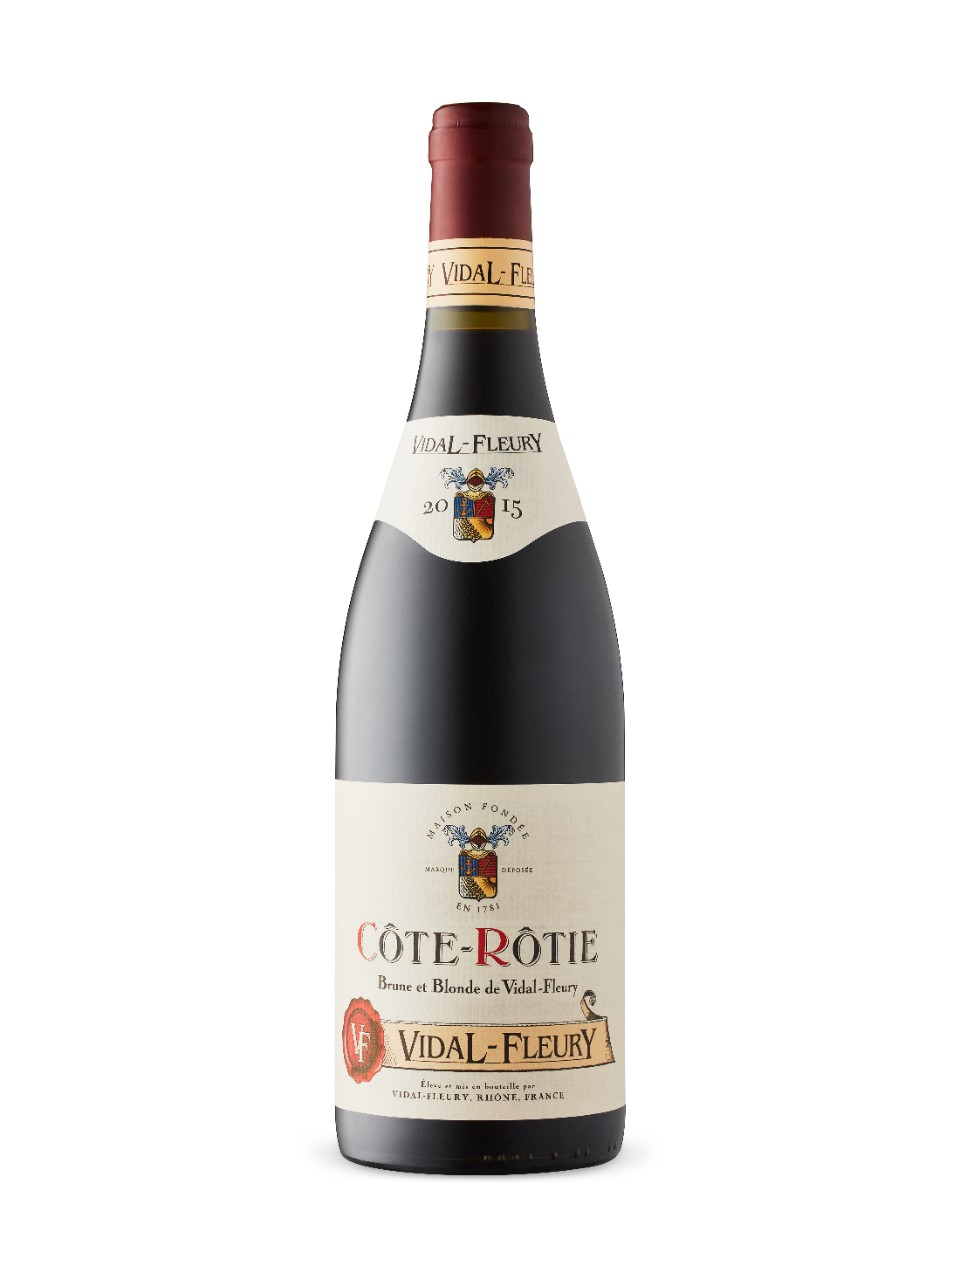 Image for J.Vidal-Fleury Cote-Rotie Brune & Blonde 2015 from LCBO